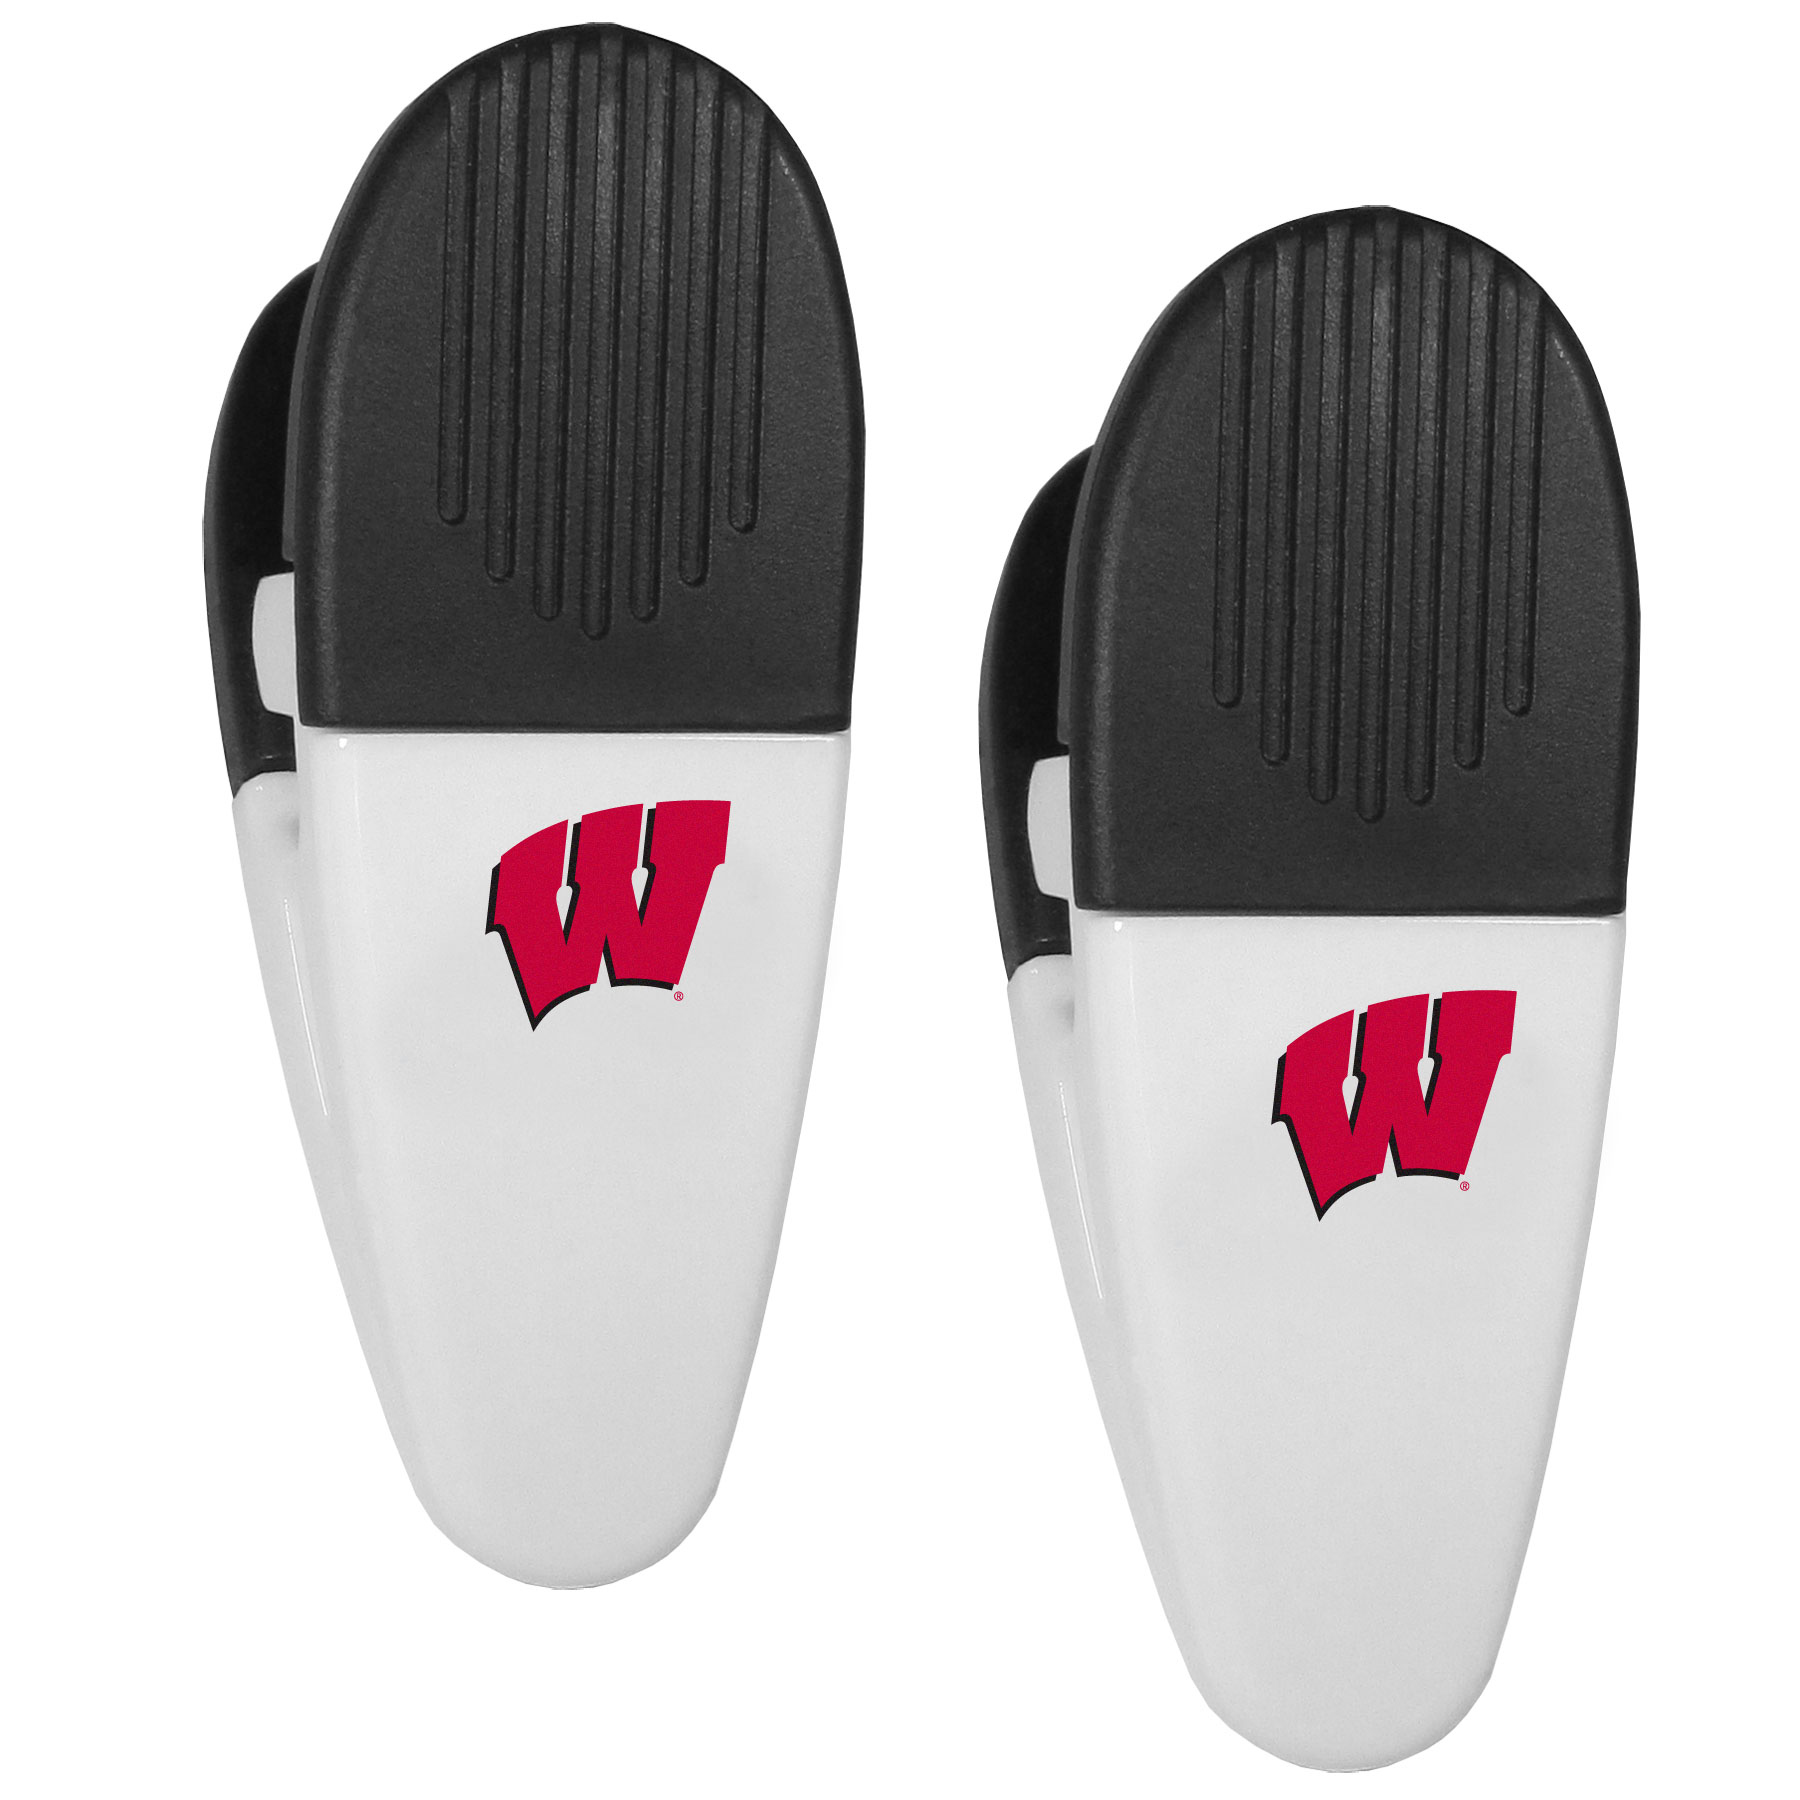 Wisconsin Badgers Mini Chip Clip Magnets, 2 pk - Our Wisconsin Badgers chip clip magnets feature a crisp team logo on the front of the clip. The clip is perfect for sealing chips for freshness and with the powerful magnet on the back it can be used to attach notes to the fridge or hanging your child's artwork. Set of 2 magnet clips, each clip is 3.5 inches tall and 1.25 inch wide.